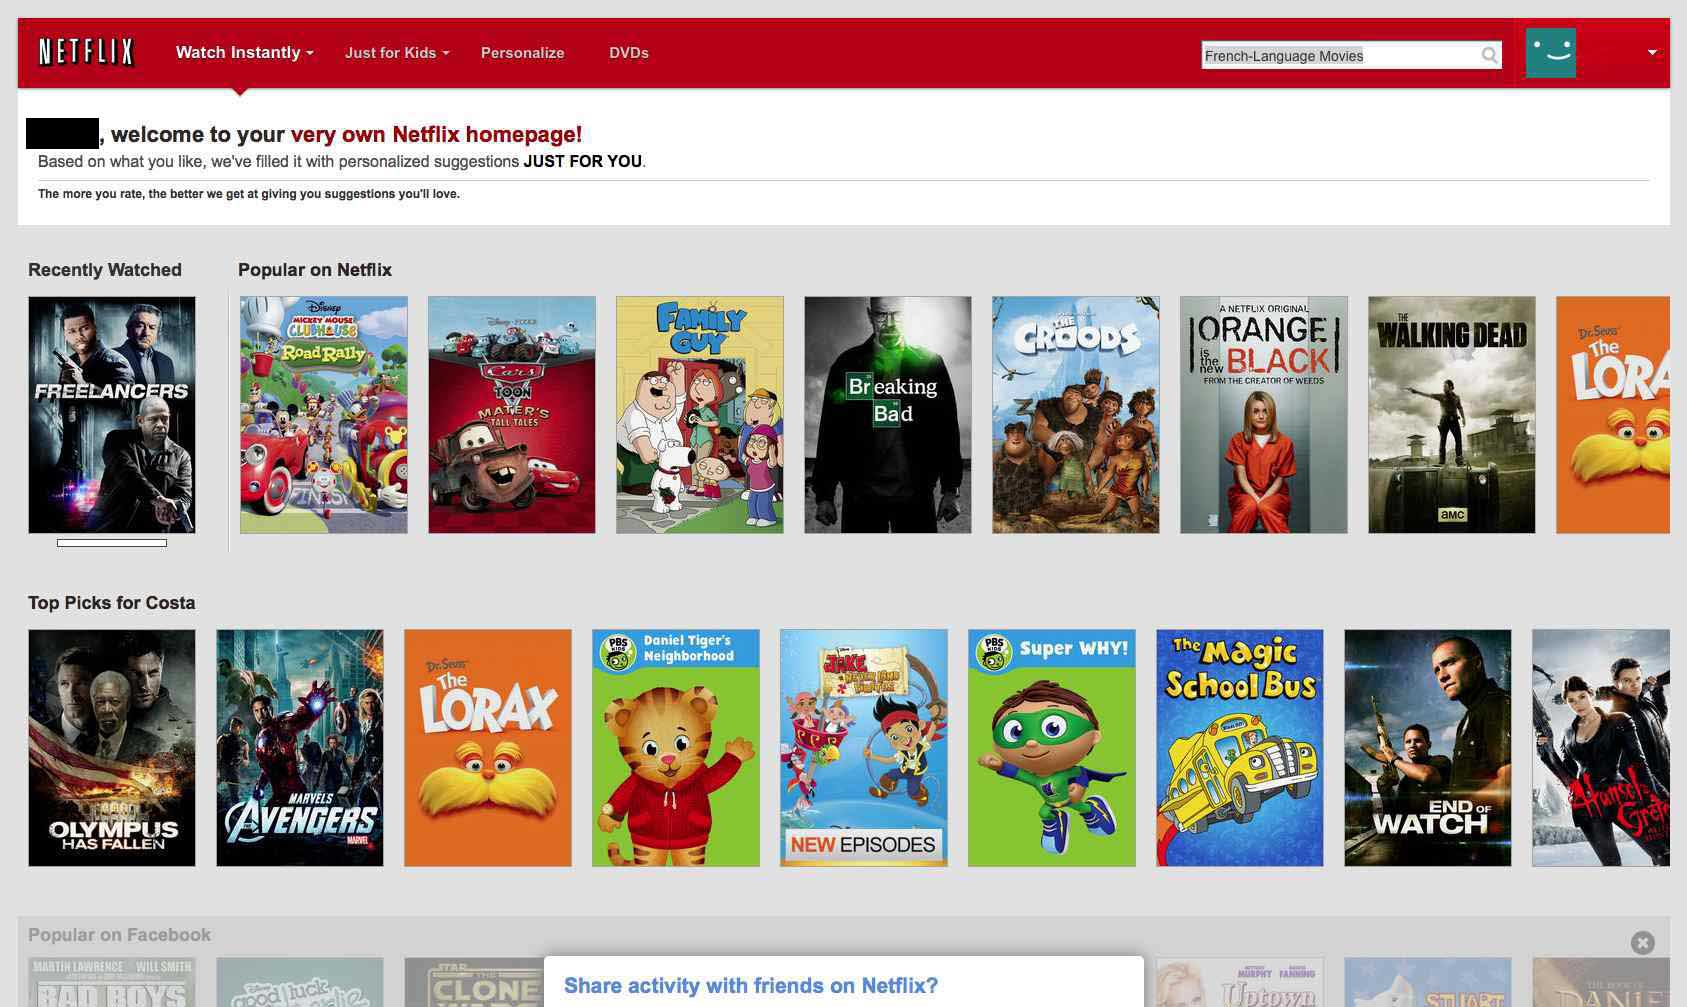 Bypass Netflix - HD movies french language